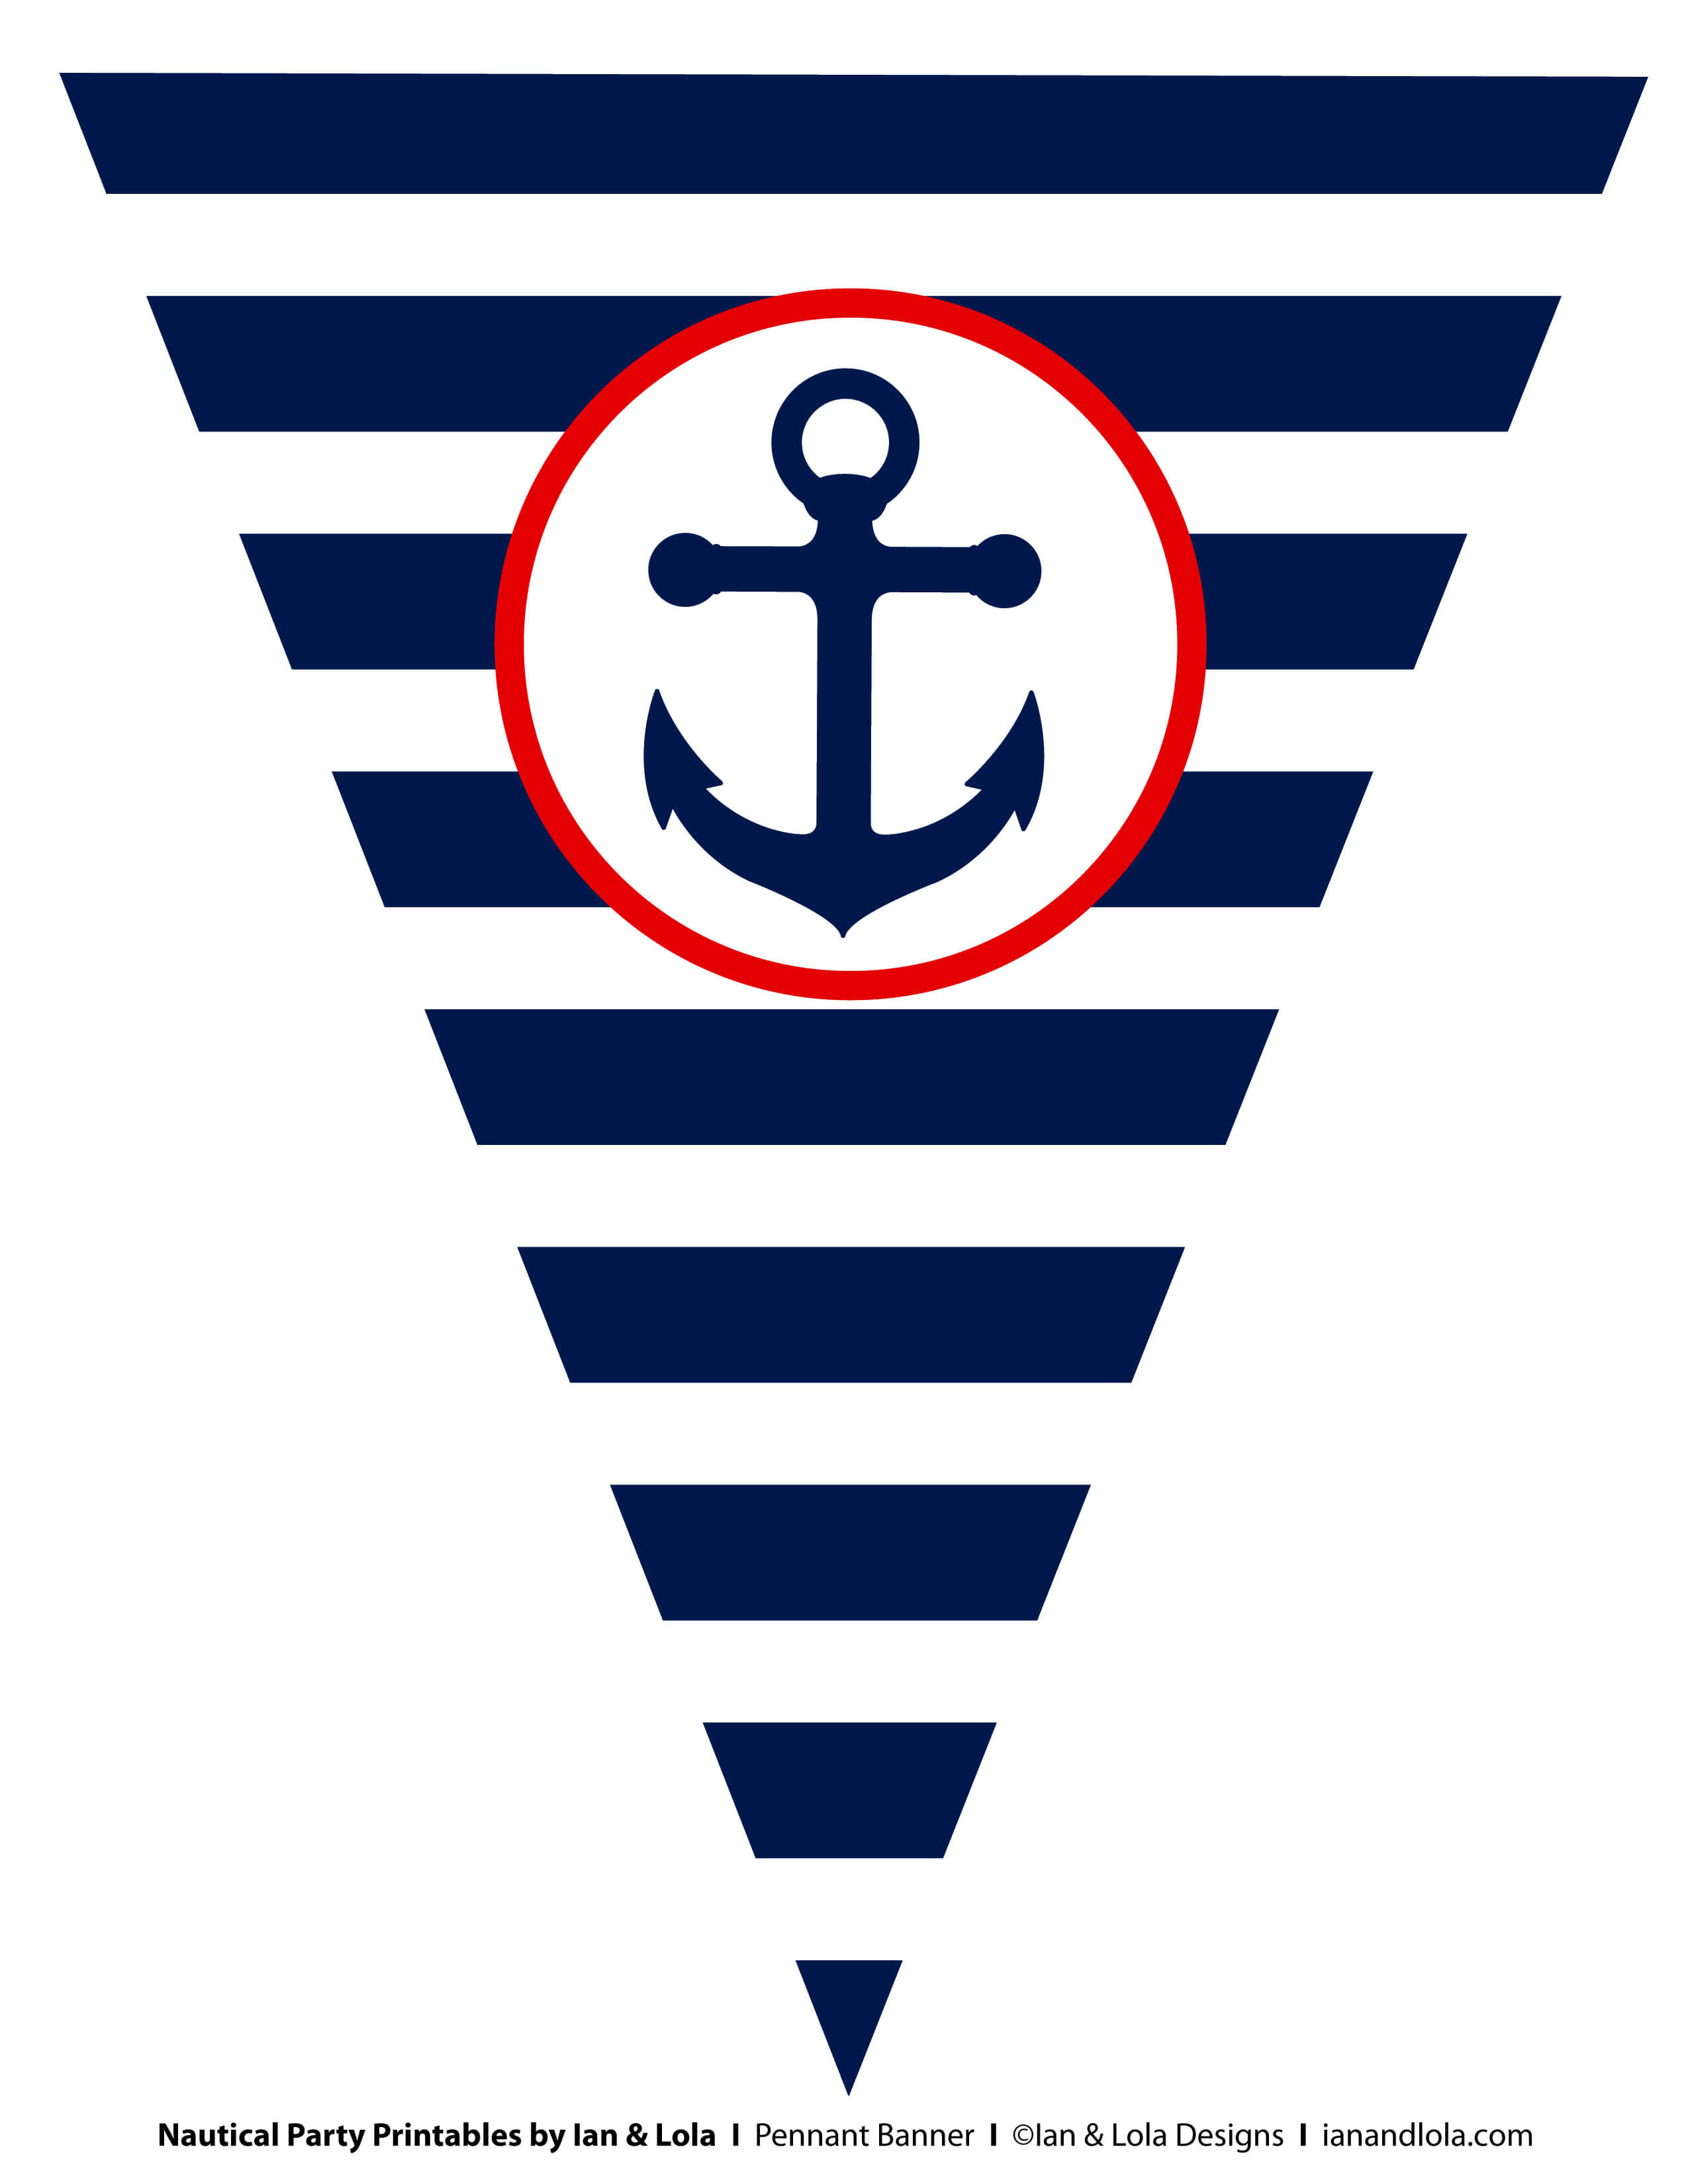 Free Nautical Party Printables From Ian & Lola Designs In Nautical Banner Template